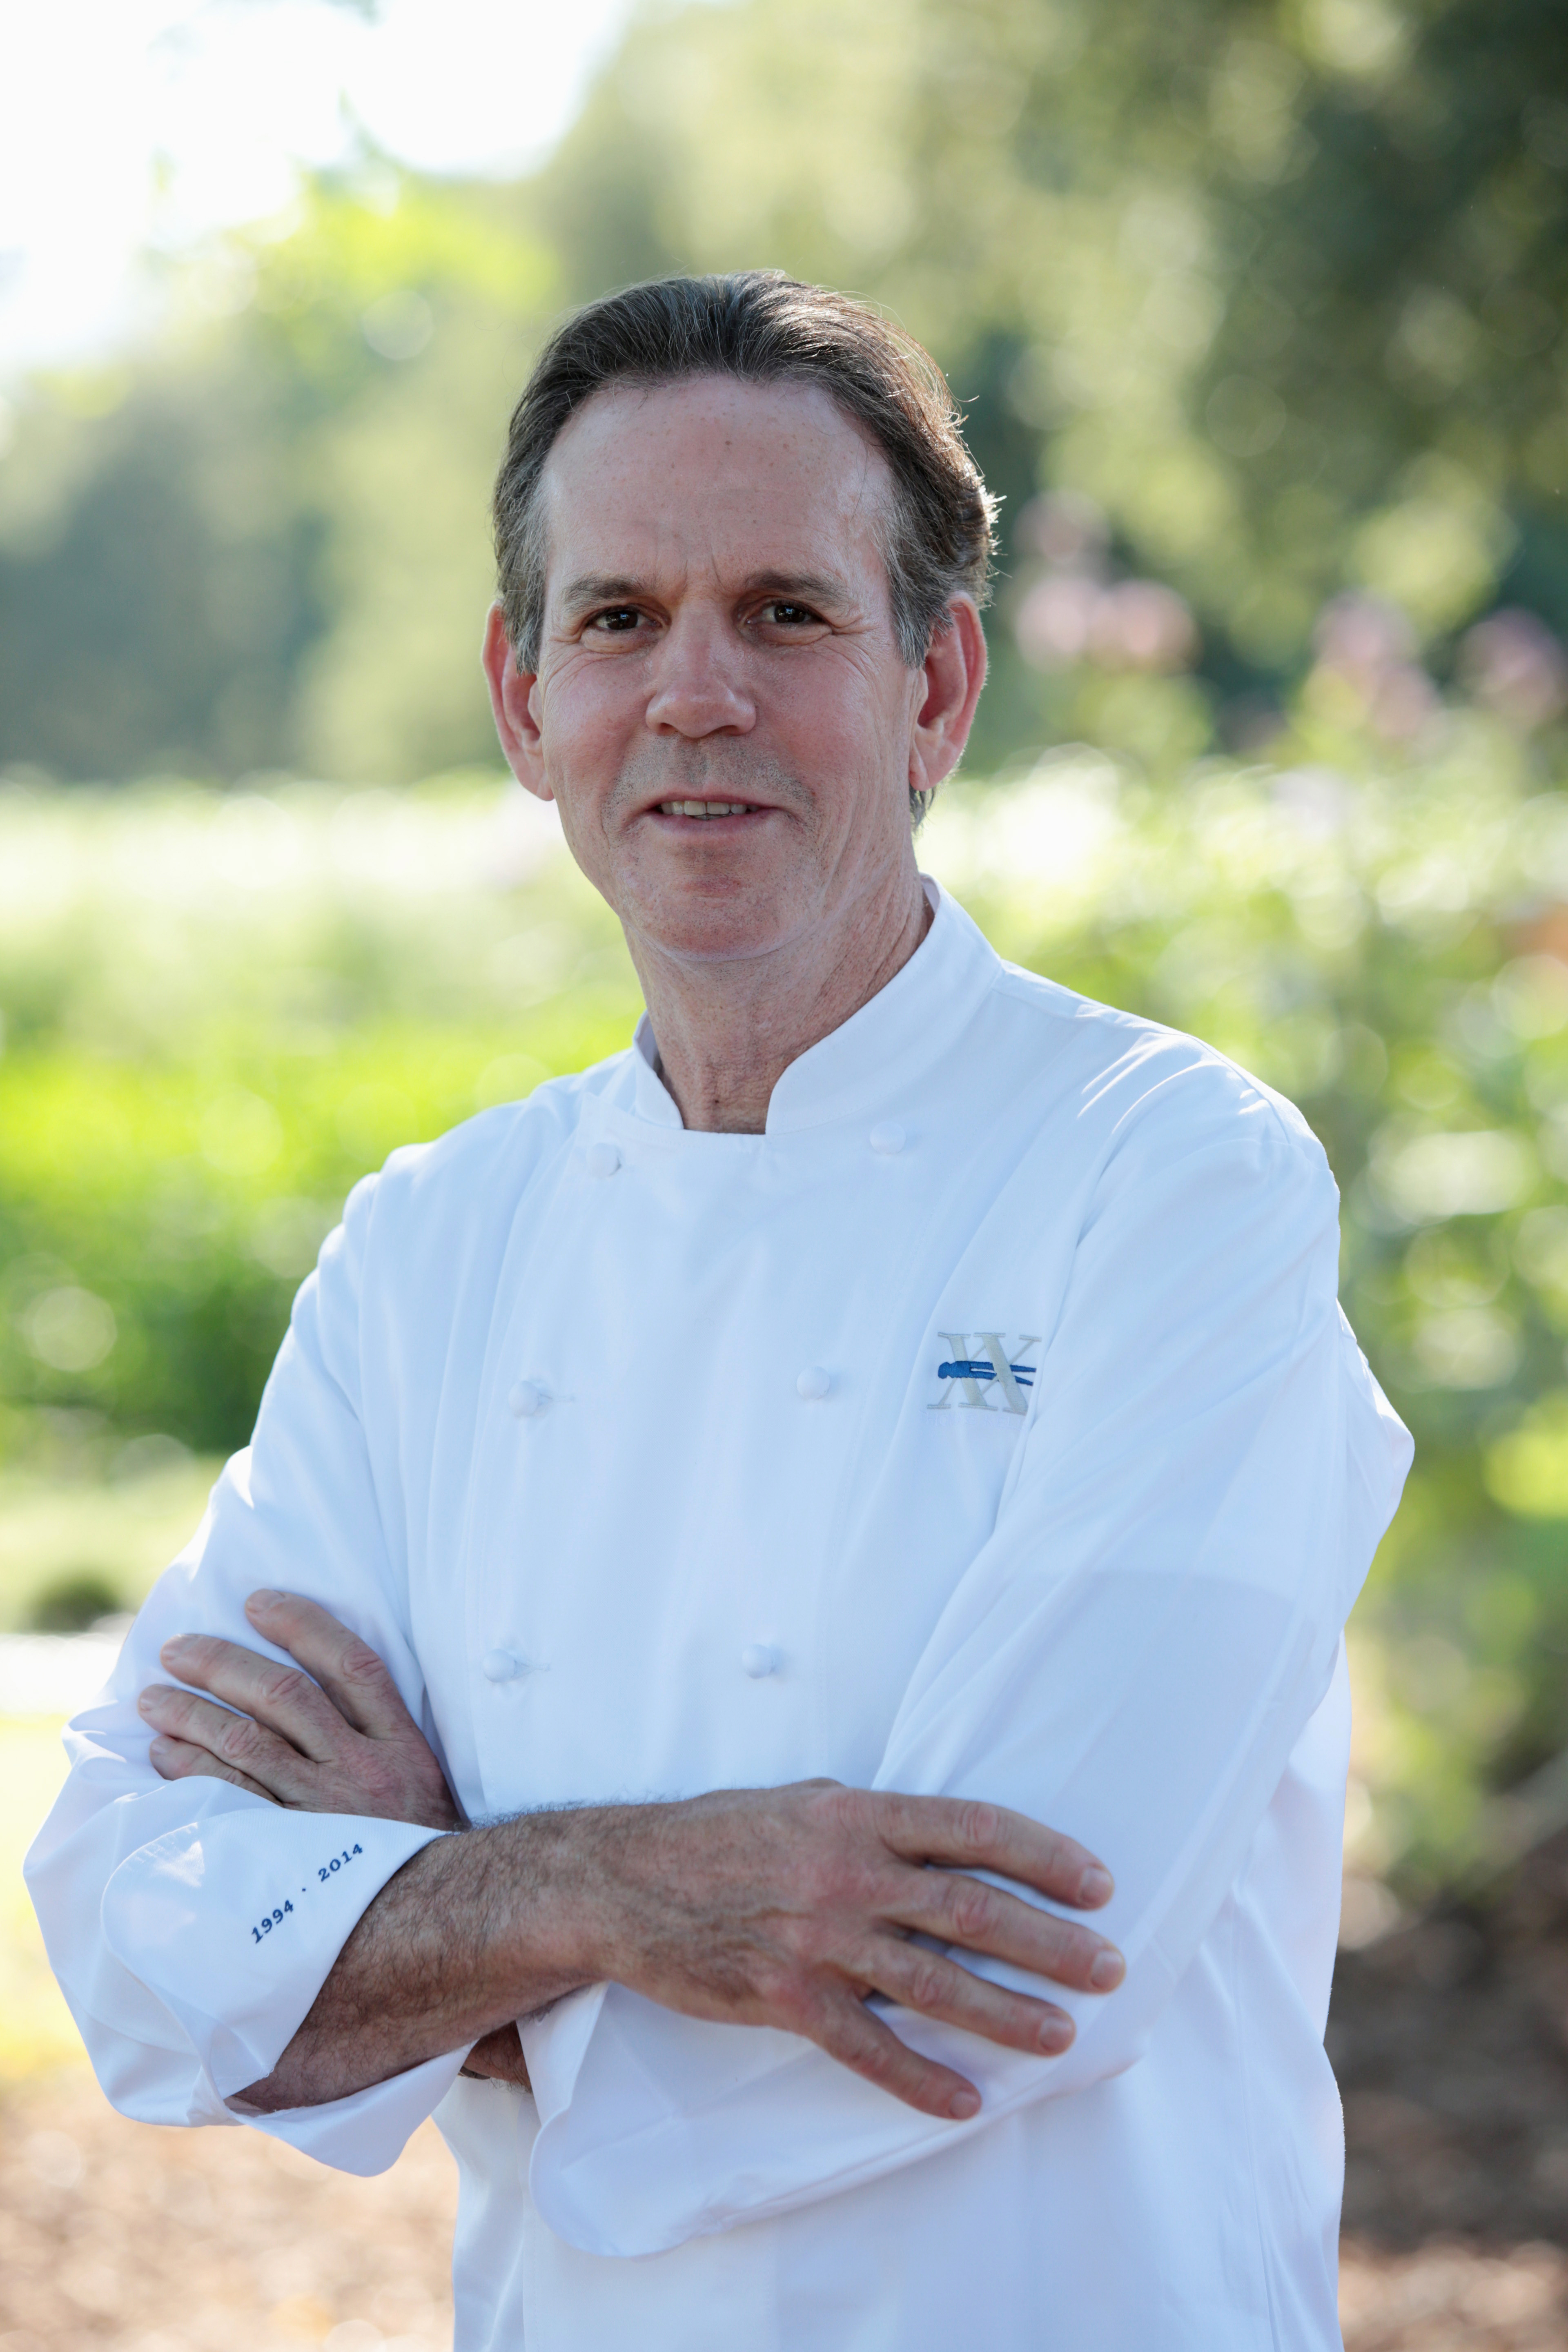 Chef Thomas Keller arrives at The French Laundry's 20th Anniversary Celebration, Saturday, July 5, 2014, Yountville, CA.